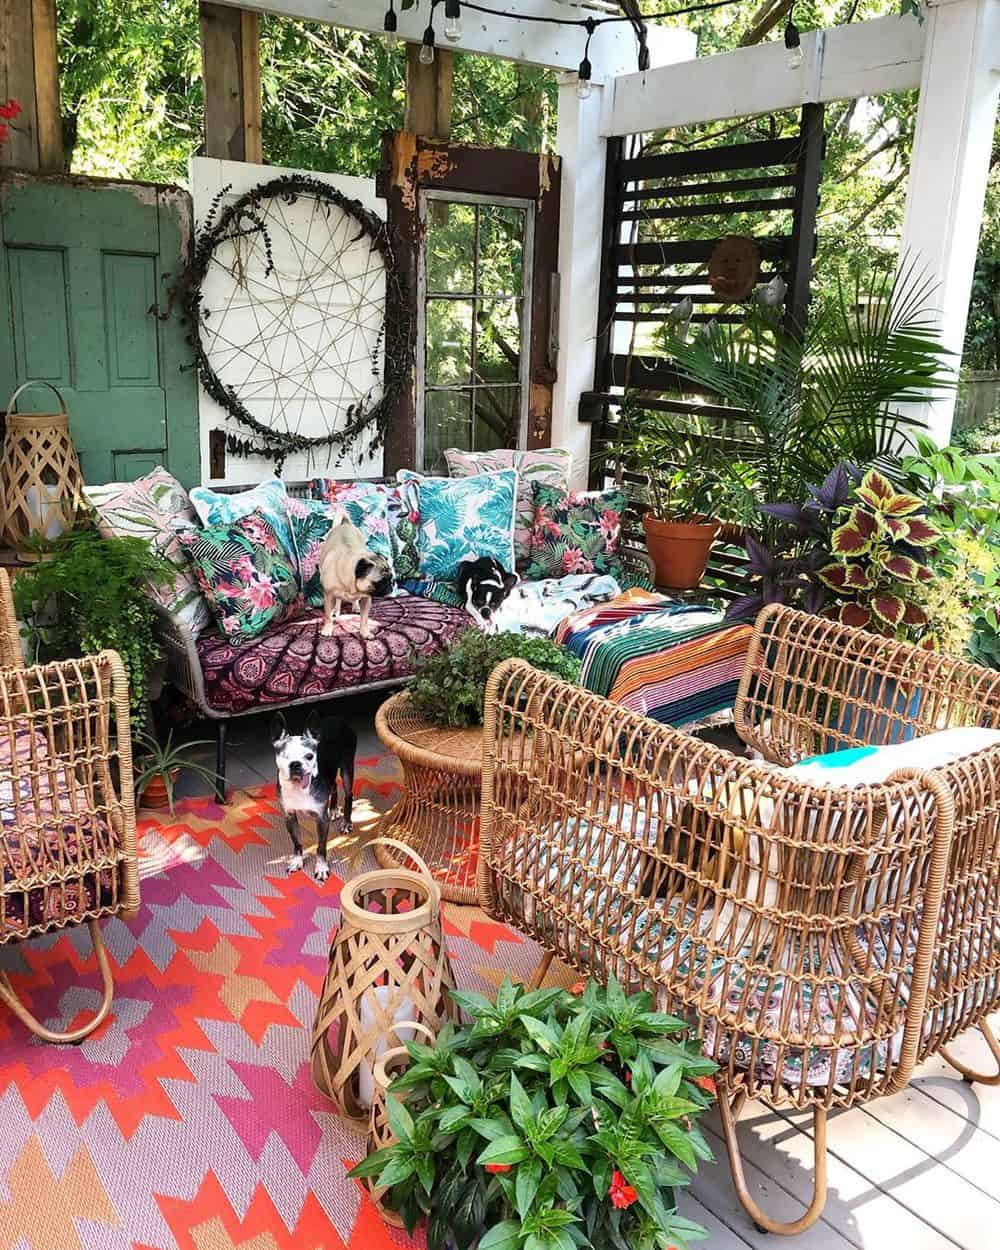 If you have patio and don't know how to match the decor with your interior? Our post on share ideas on how to complement your outdoor patio with your home interior. #patio #outdoor #homedesign #homedecor